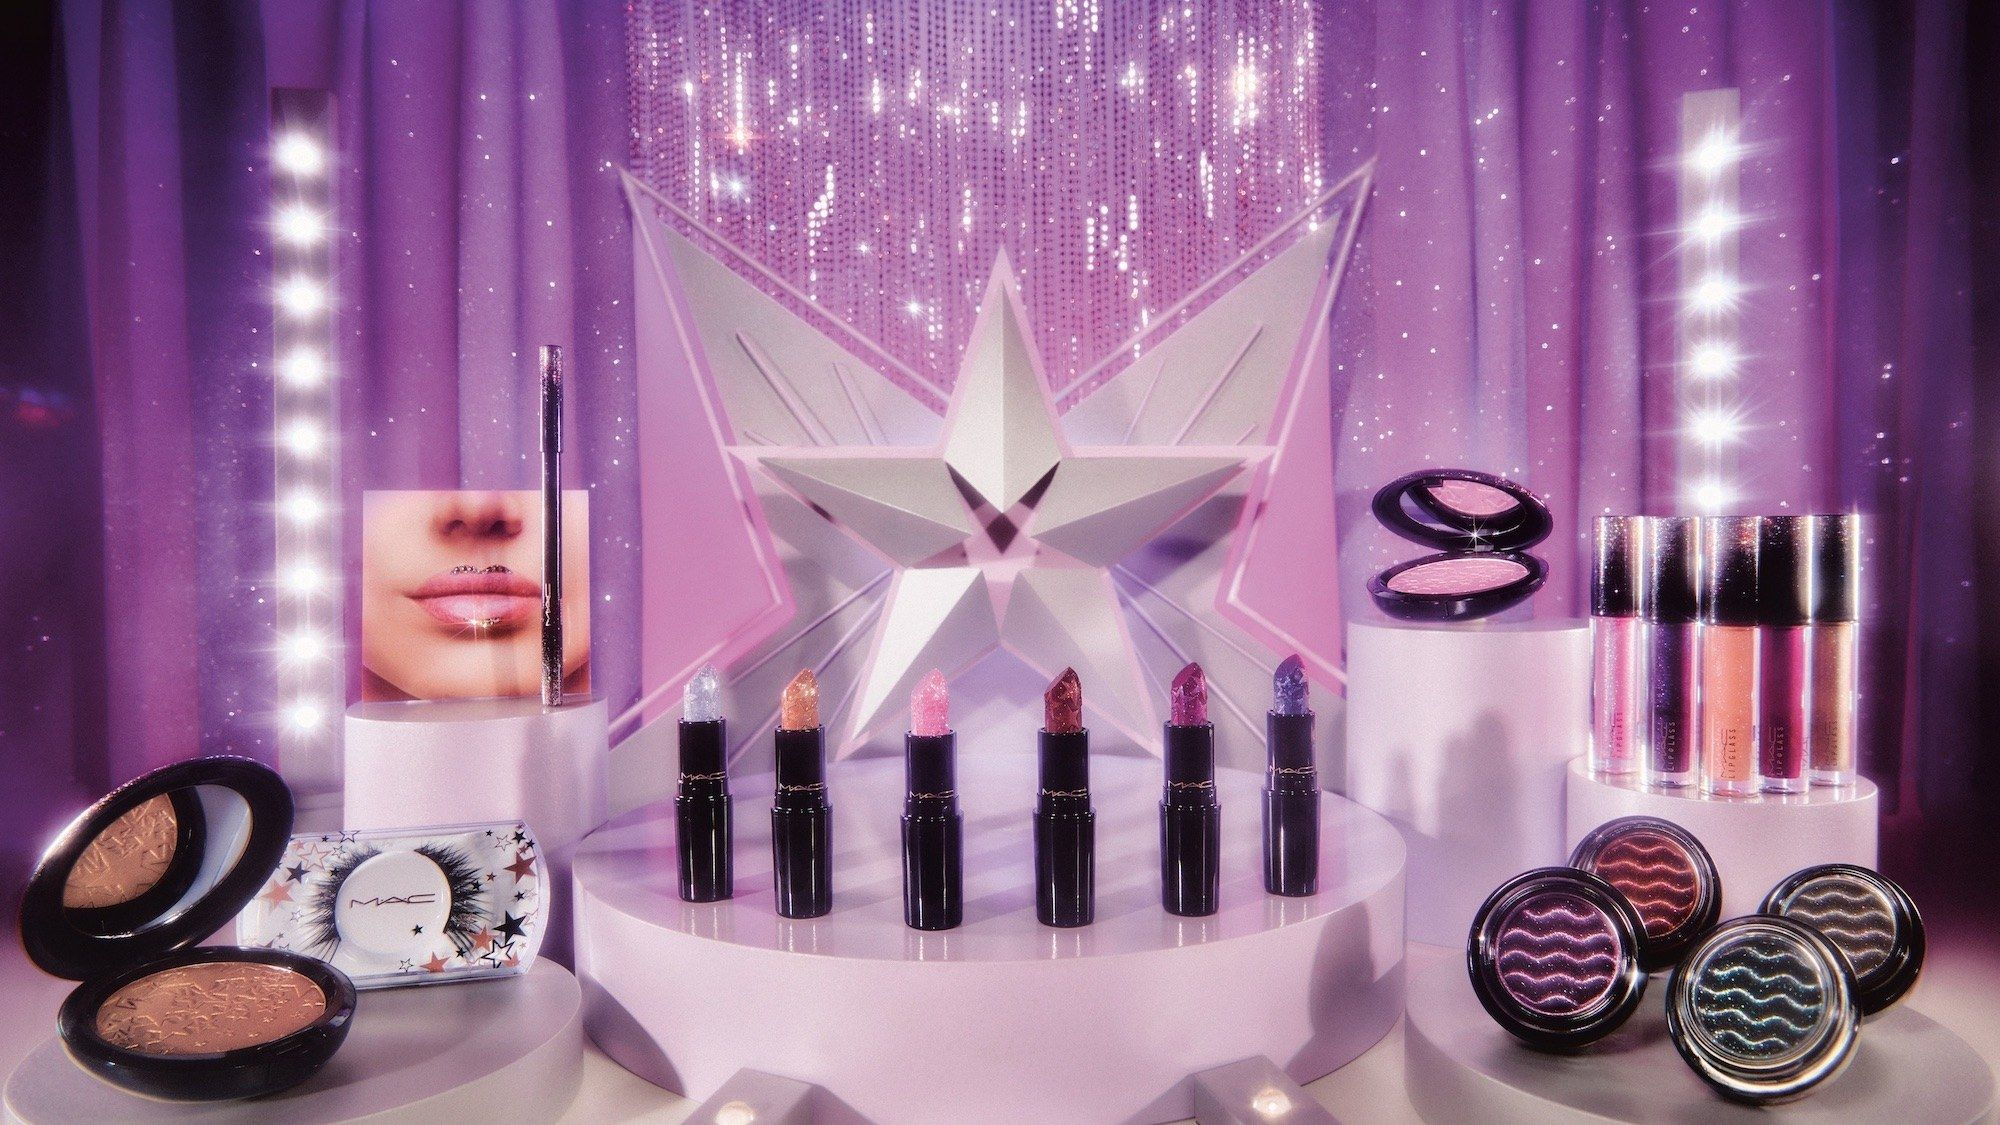 Mac Christmas Collection 2020 MAC's Holiday Collection Is Perfect for the Leo in Your Life in